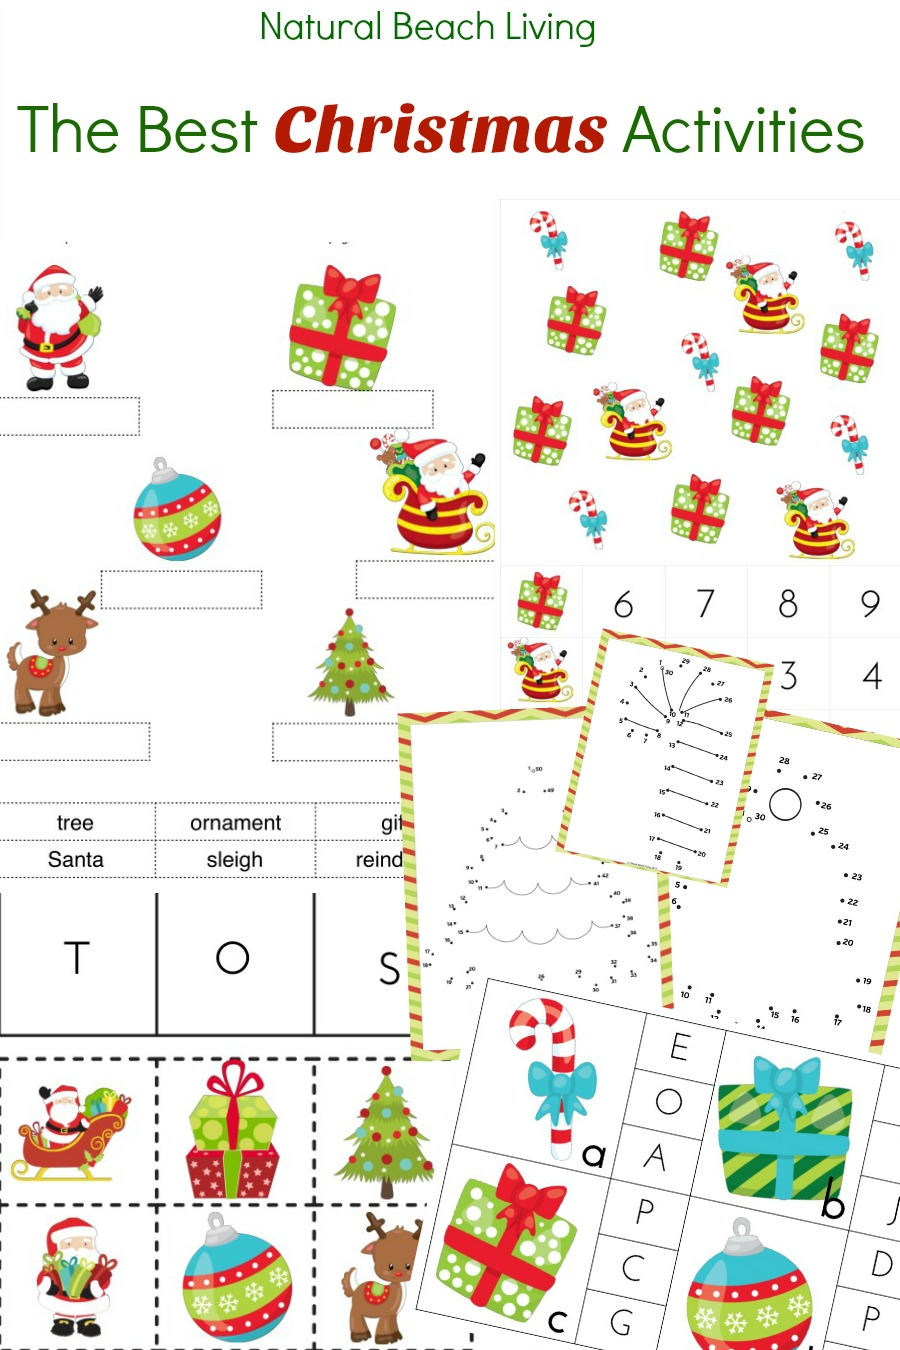 Best Christmas Activities printables, Christmas activities for kids, Hands on activities, Math, Coloring Pages, Playdough Mats, Winter Scavenger Hunt, Holiday